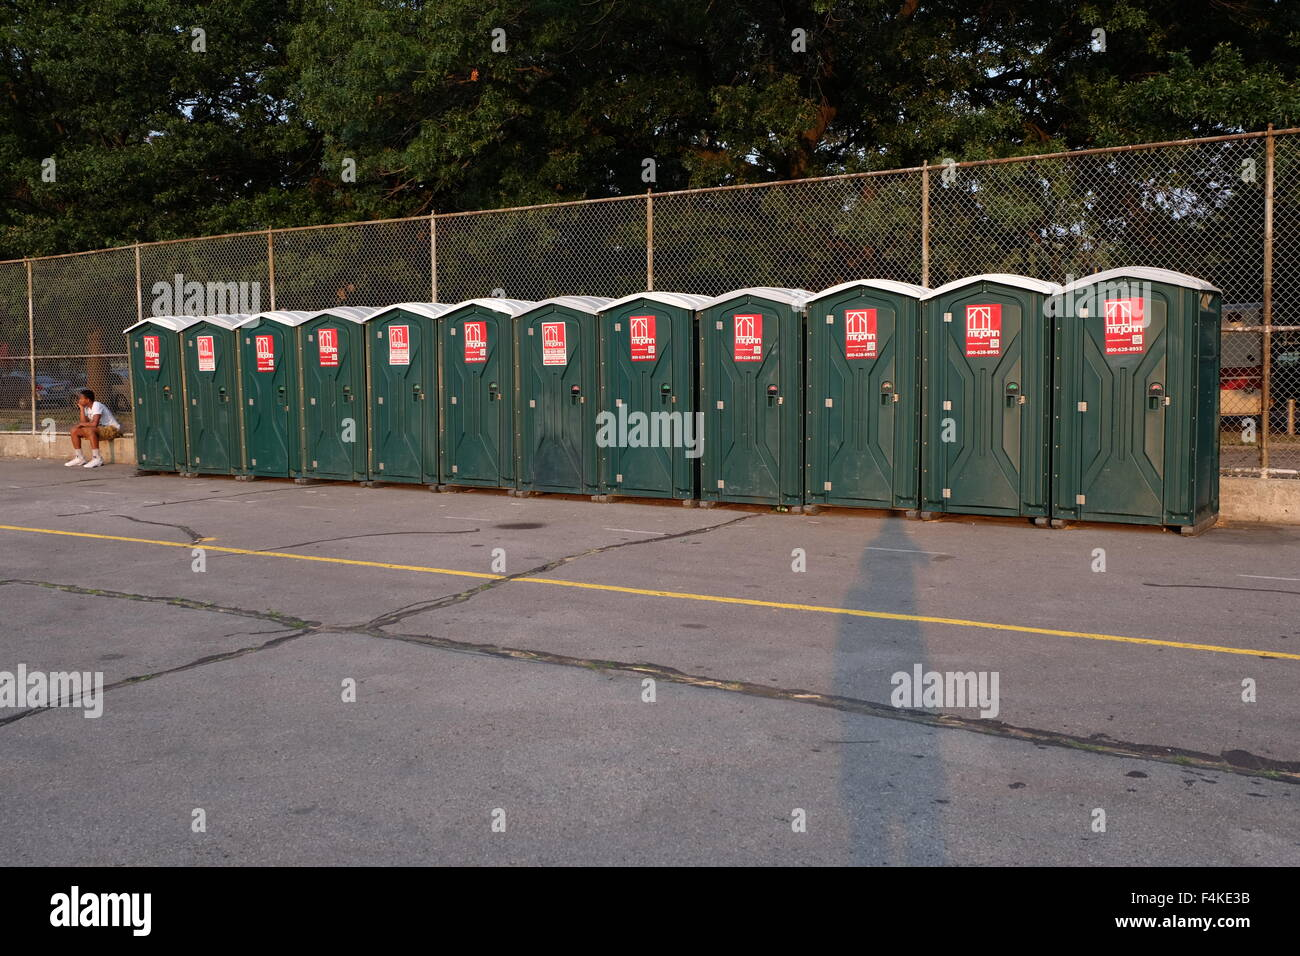 port-o-potties at an event in greenpoint, brooklyn photo by jen lombardo - Stock Image